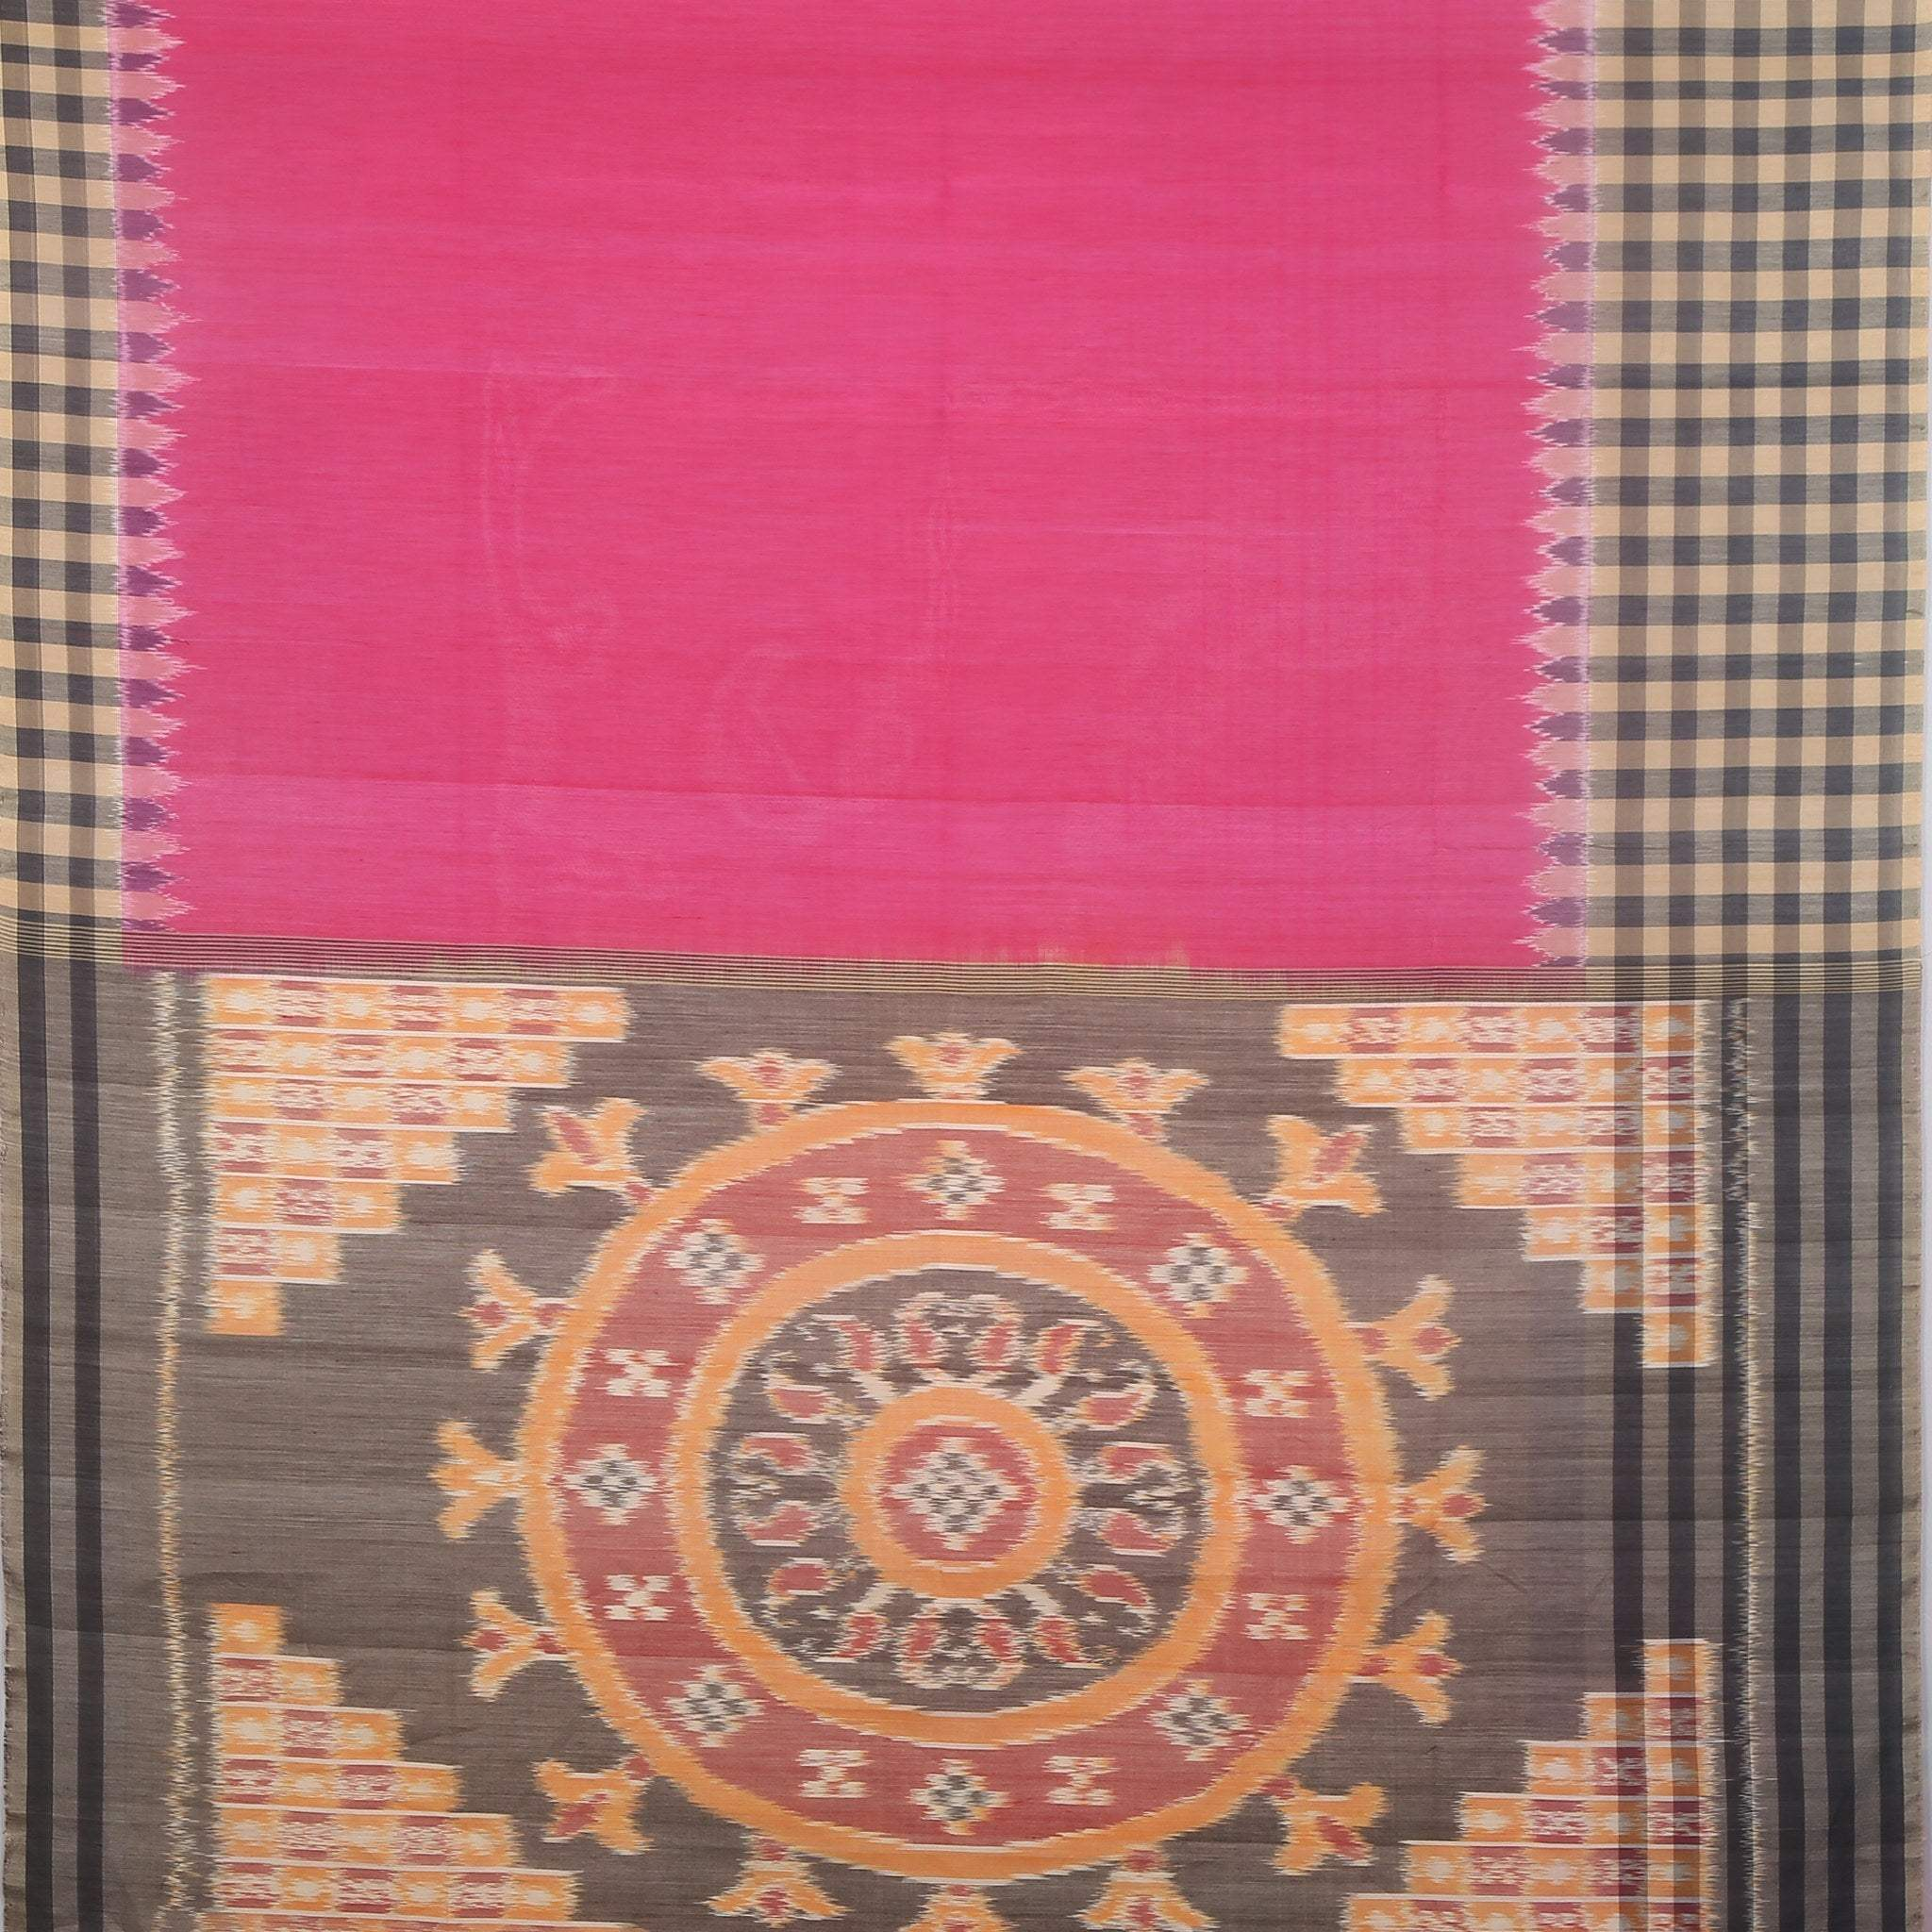 BB102637-Magenta Pink Cotton Ikkat Saree with checkered border